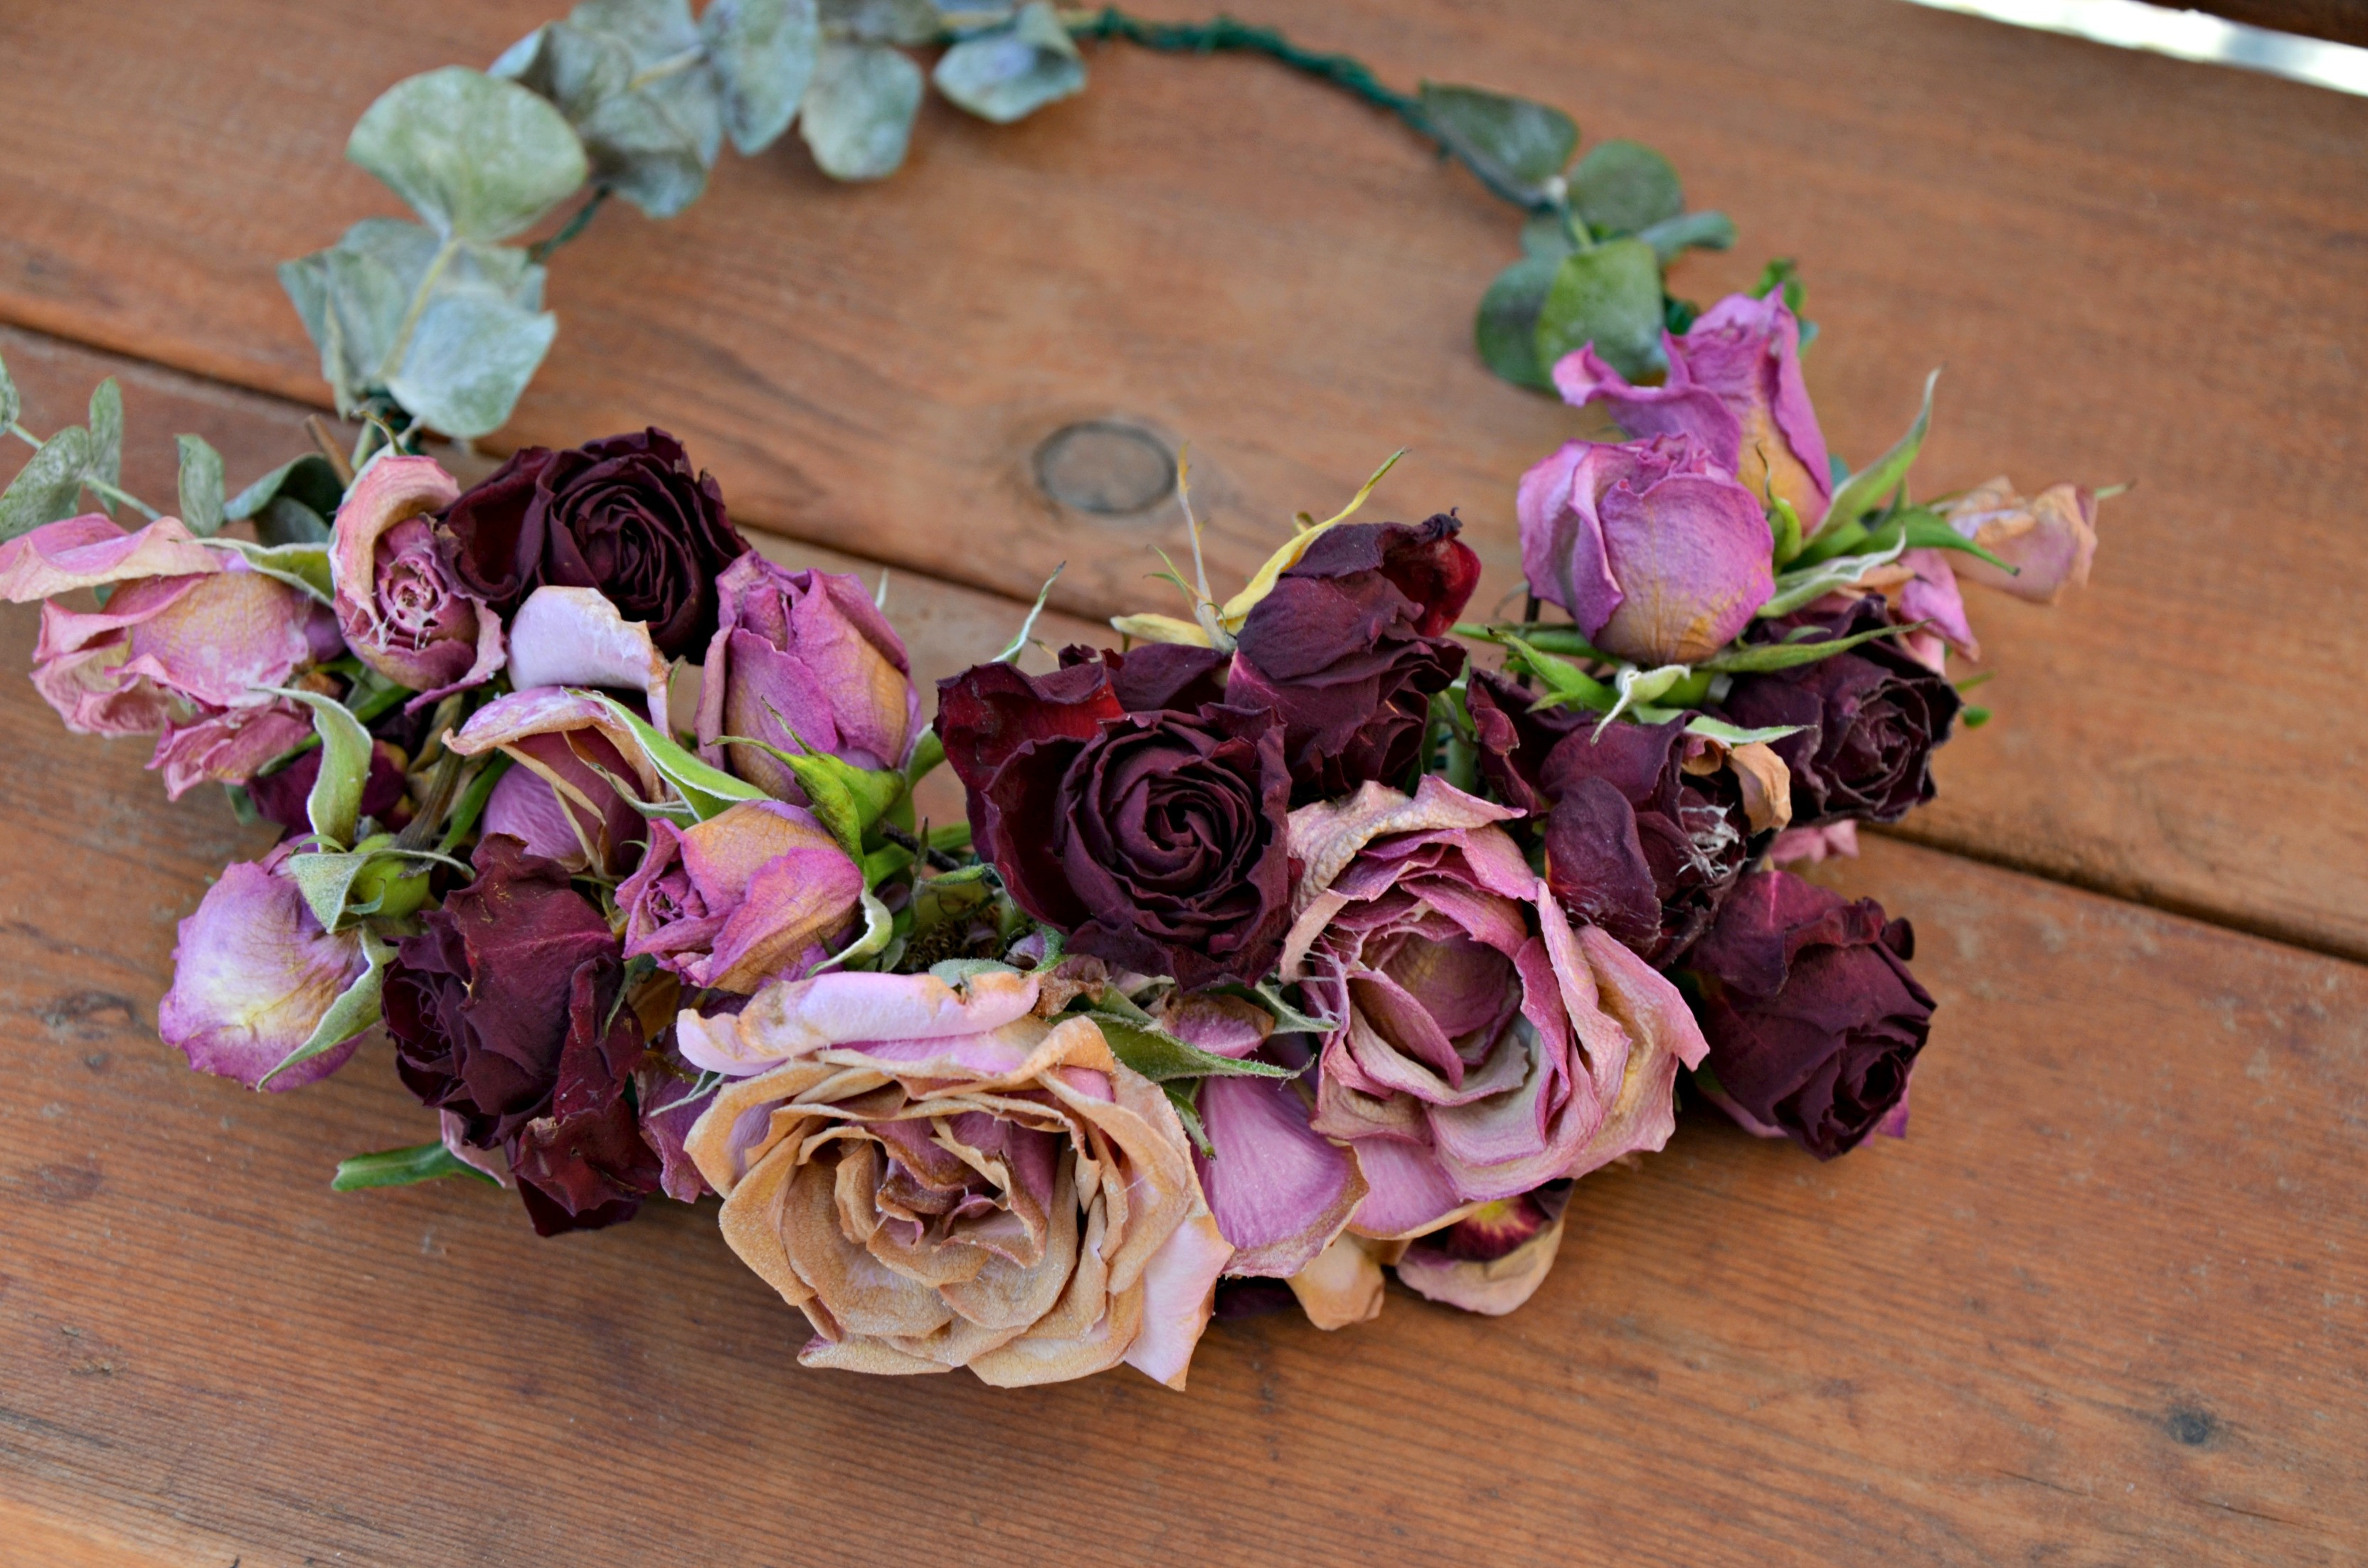 Best ideas about DIY Flower Crown . Save or Pin DIY Floral Crown Hi Lovely Now.